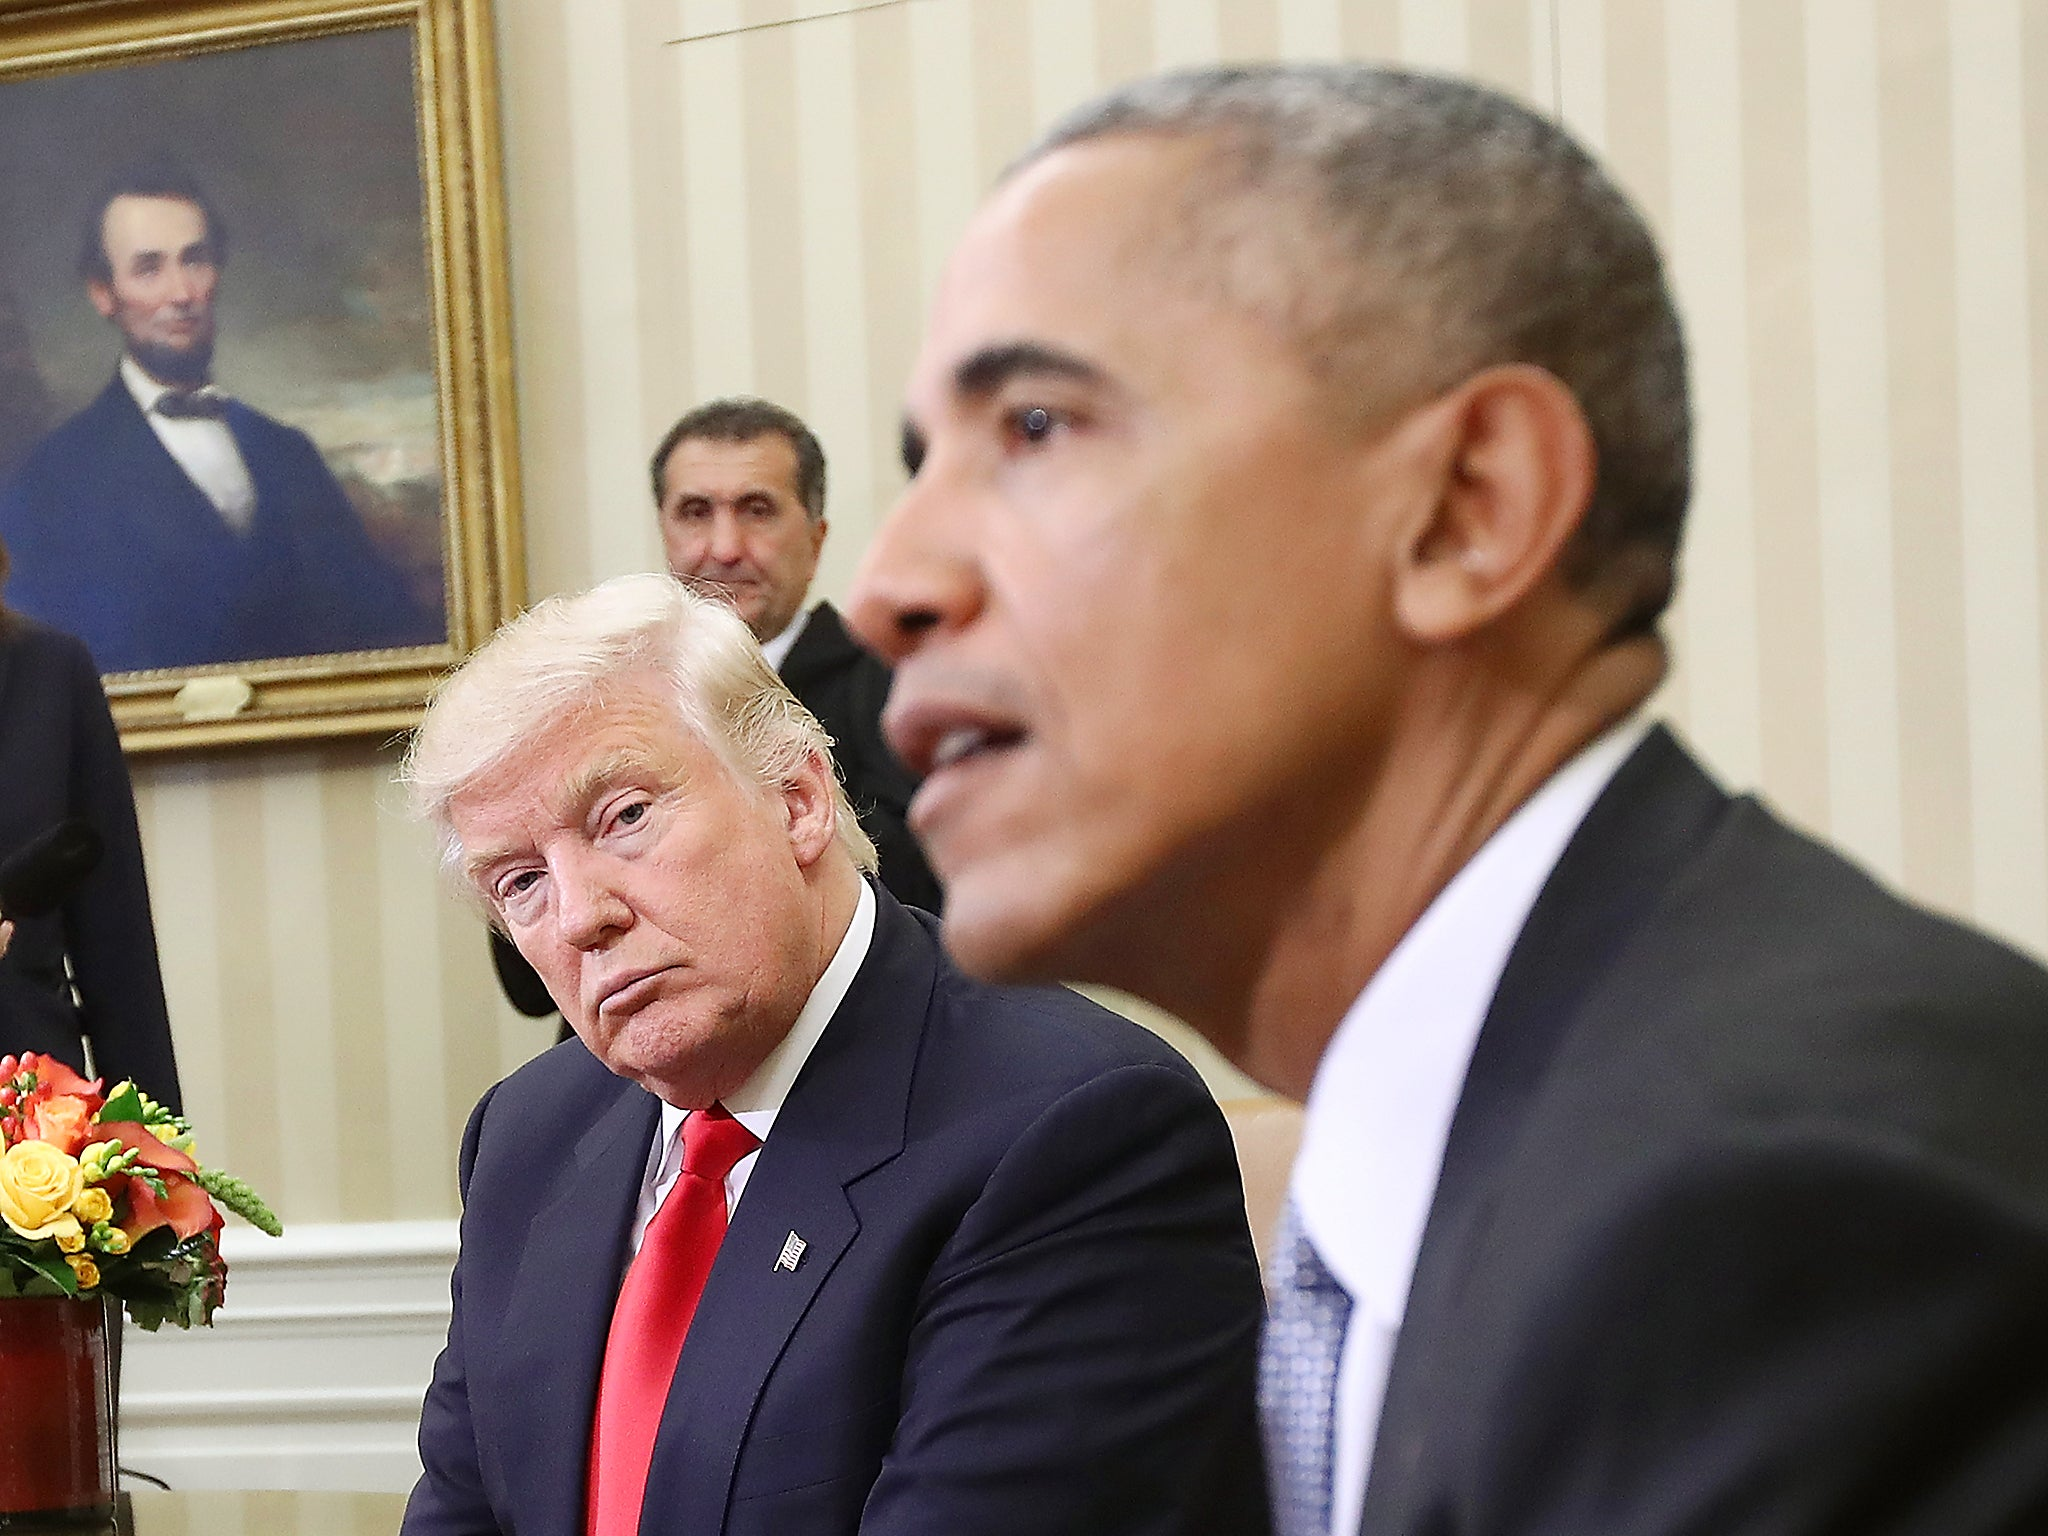 The 10 differences between Trump and Obama after his first year in